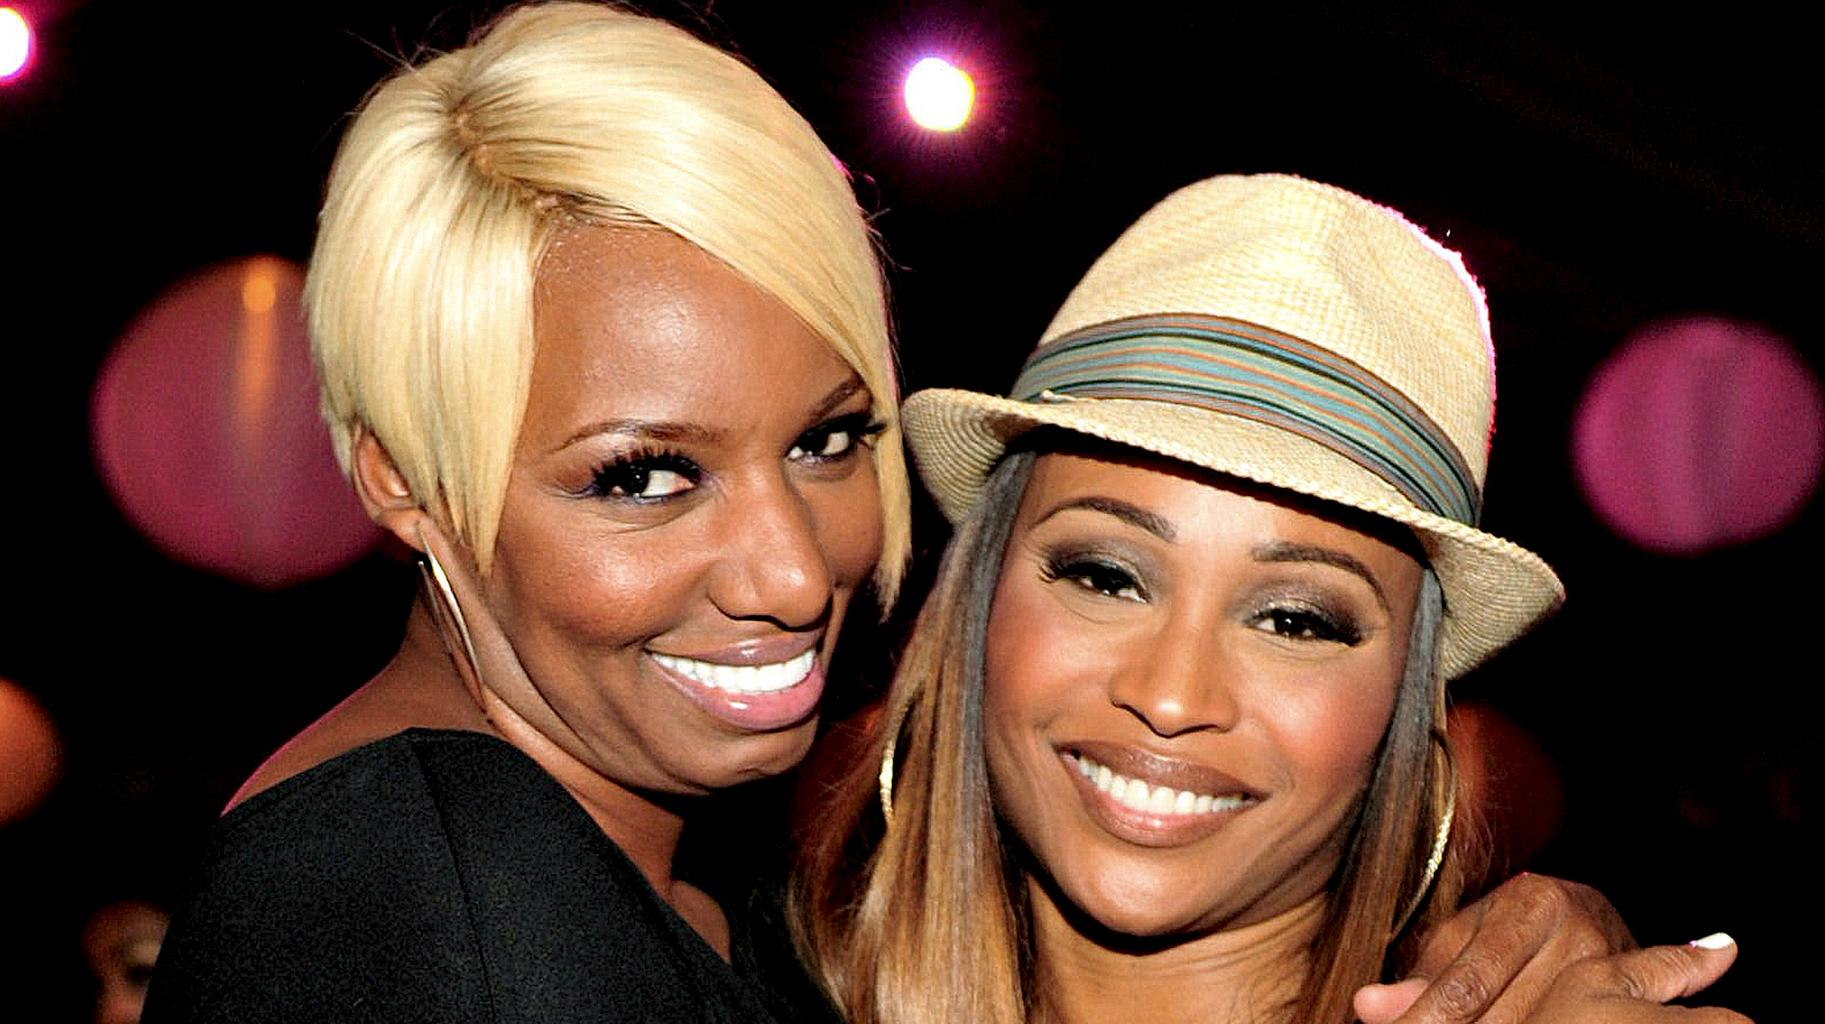 NeNe Leakes Gushes Over Her 'Sister Friend' Cynthia Bailey In An All-Black Gorgeous Outfit